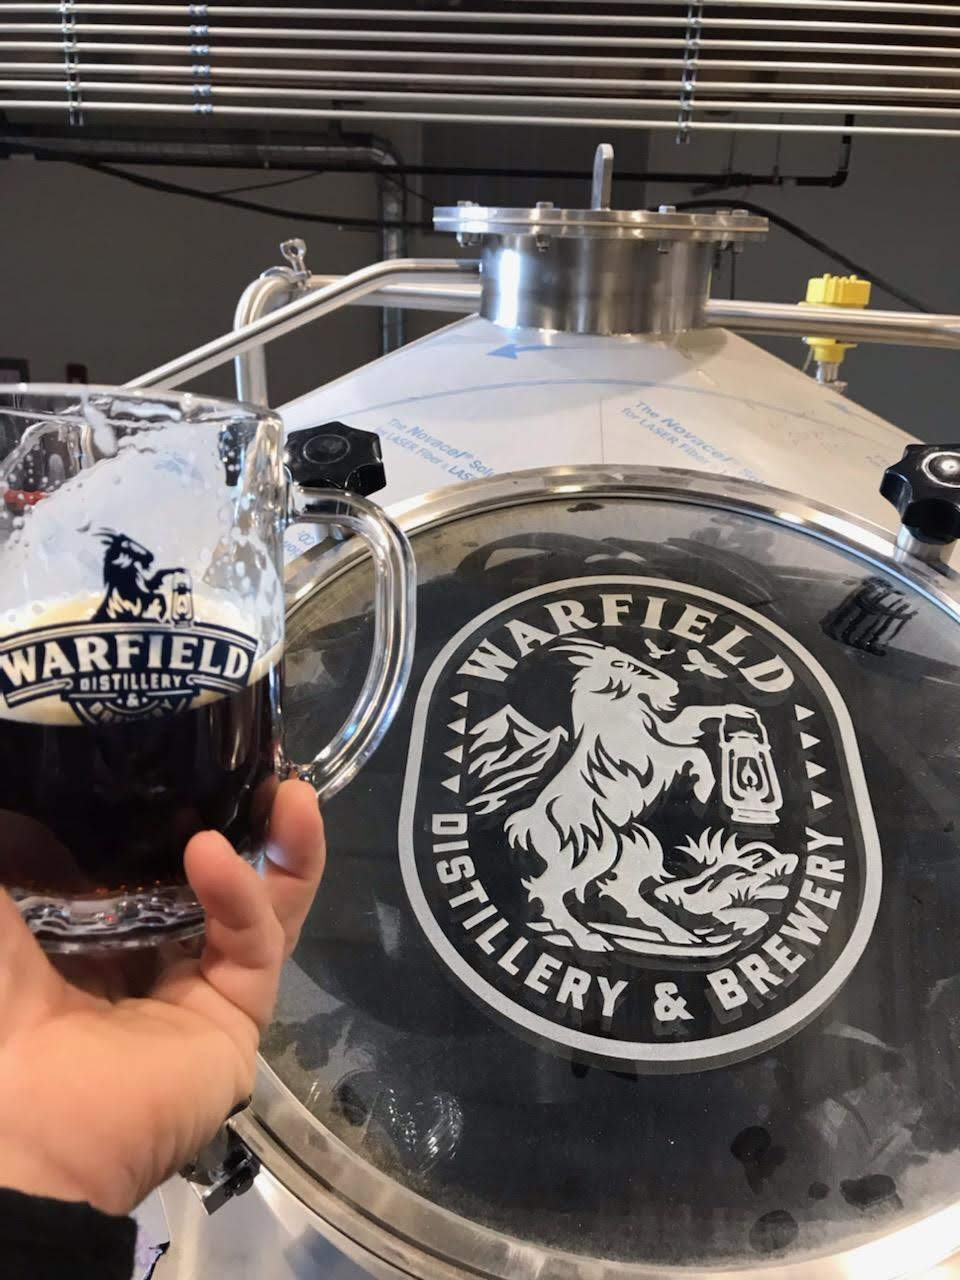 Episode 44: On the Road in Idaho, The Warfield Distillery & Brewery